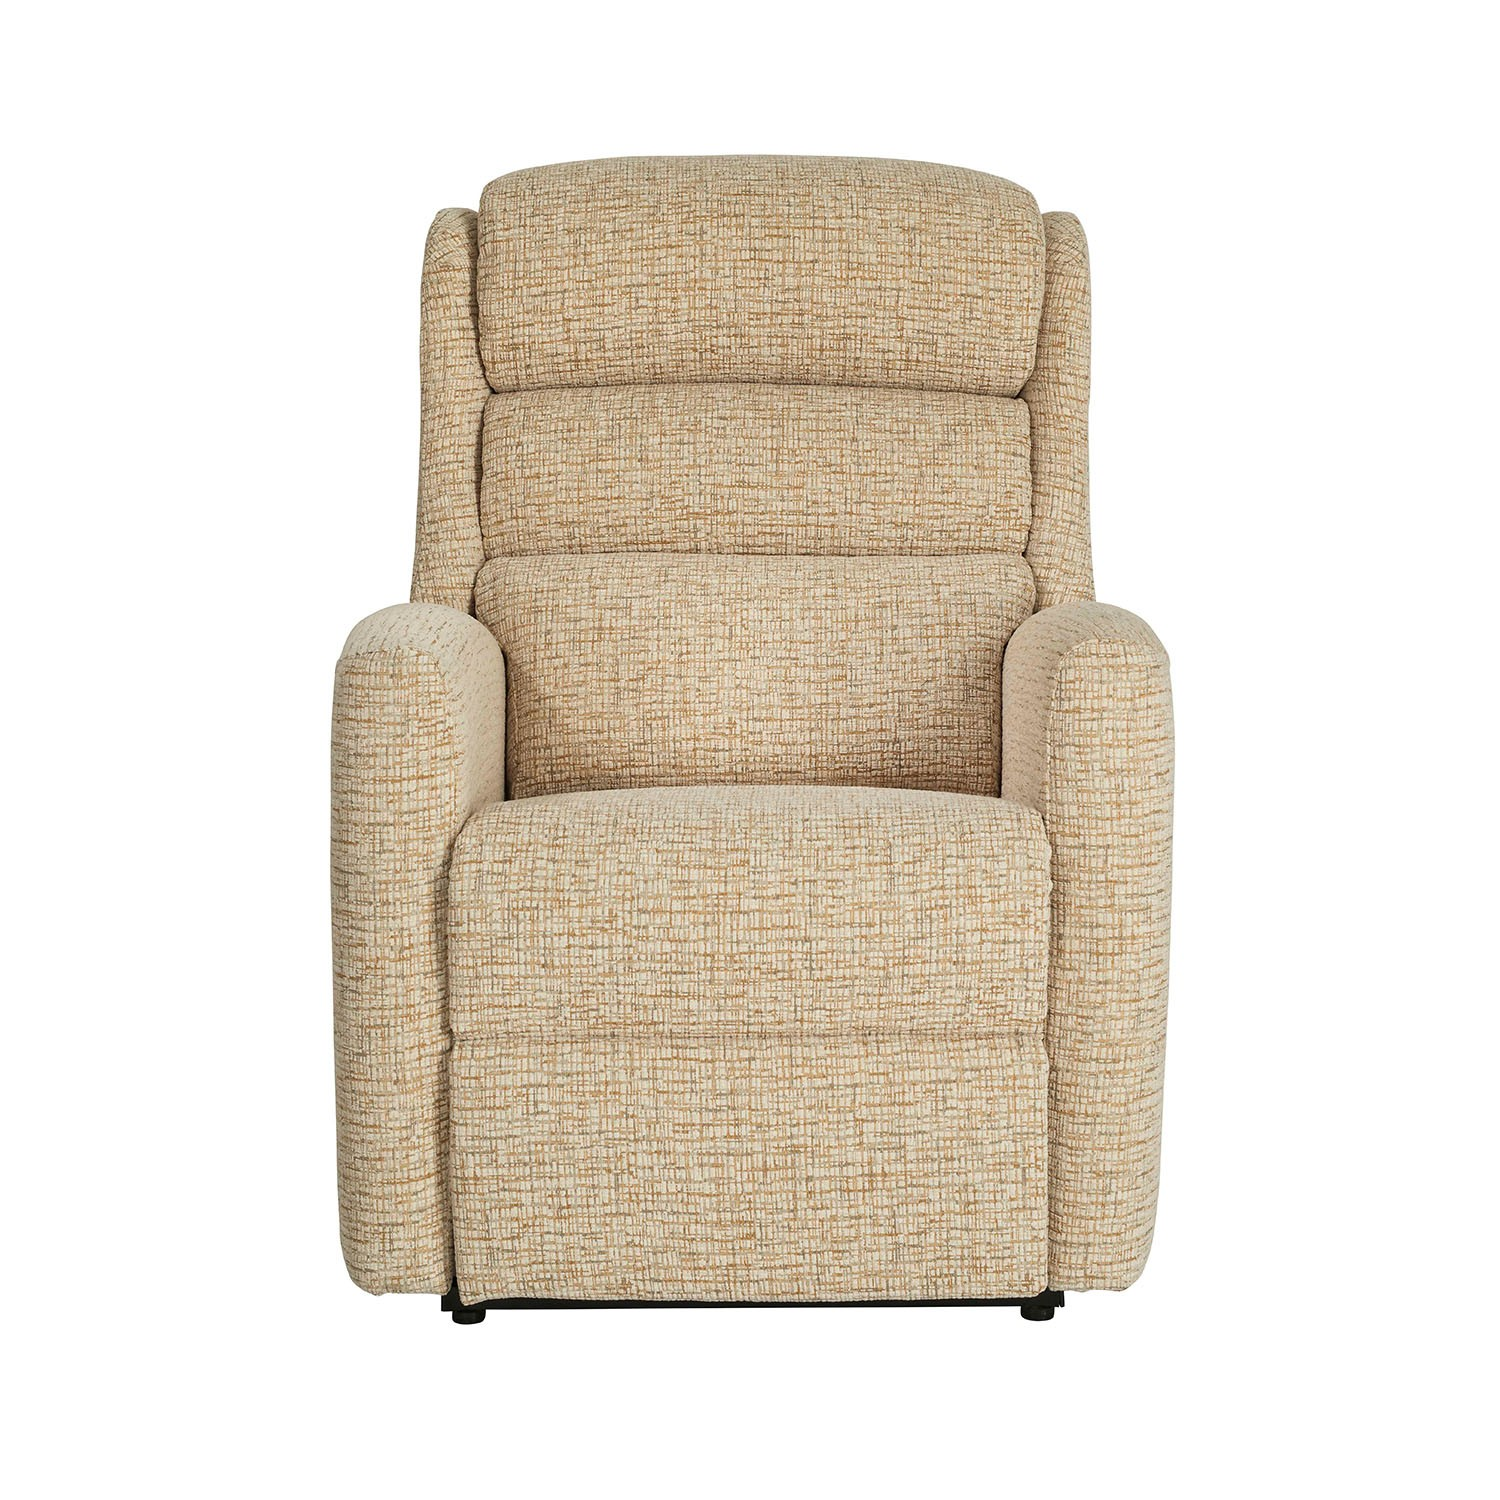 Celebrity somersby petite dbl pwr rec chair